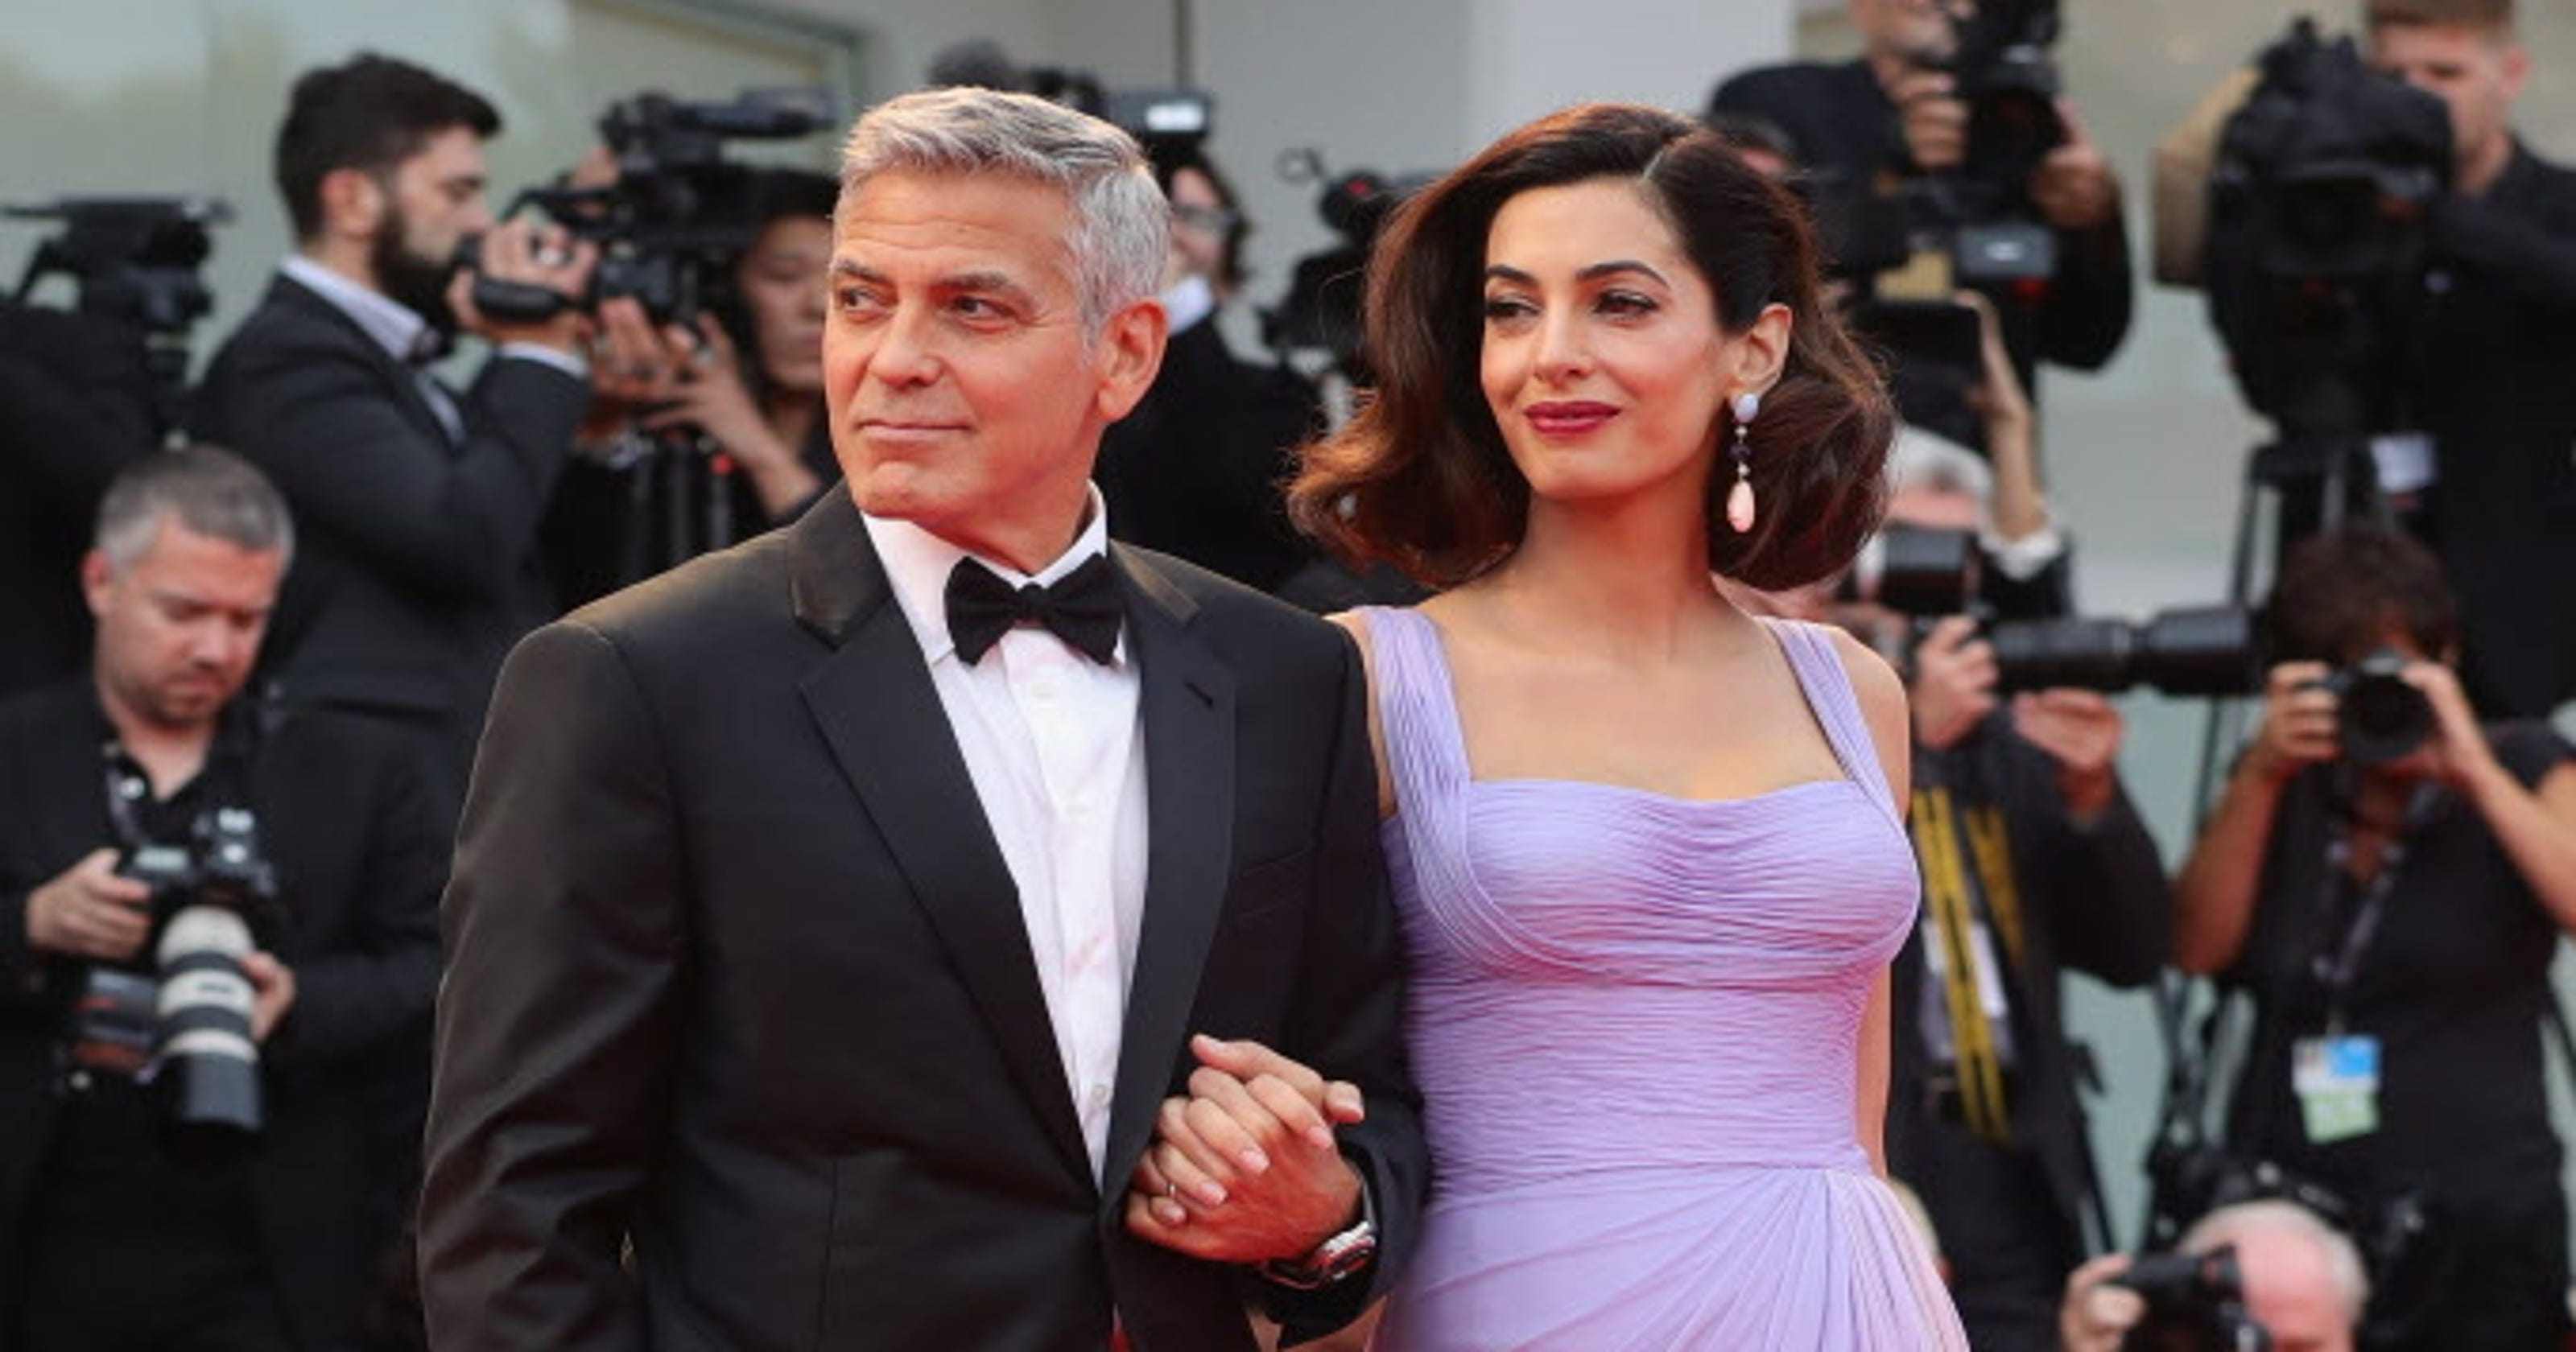 George Clooney On Selling Twins Photos Wed Like To Not Do It